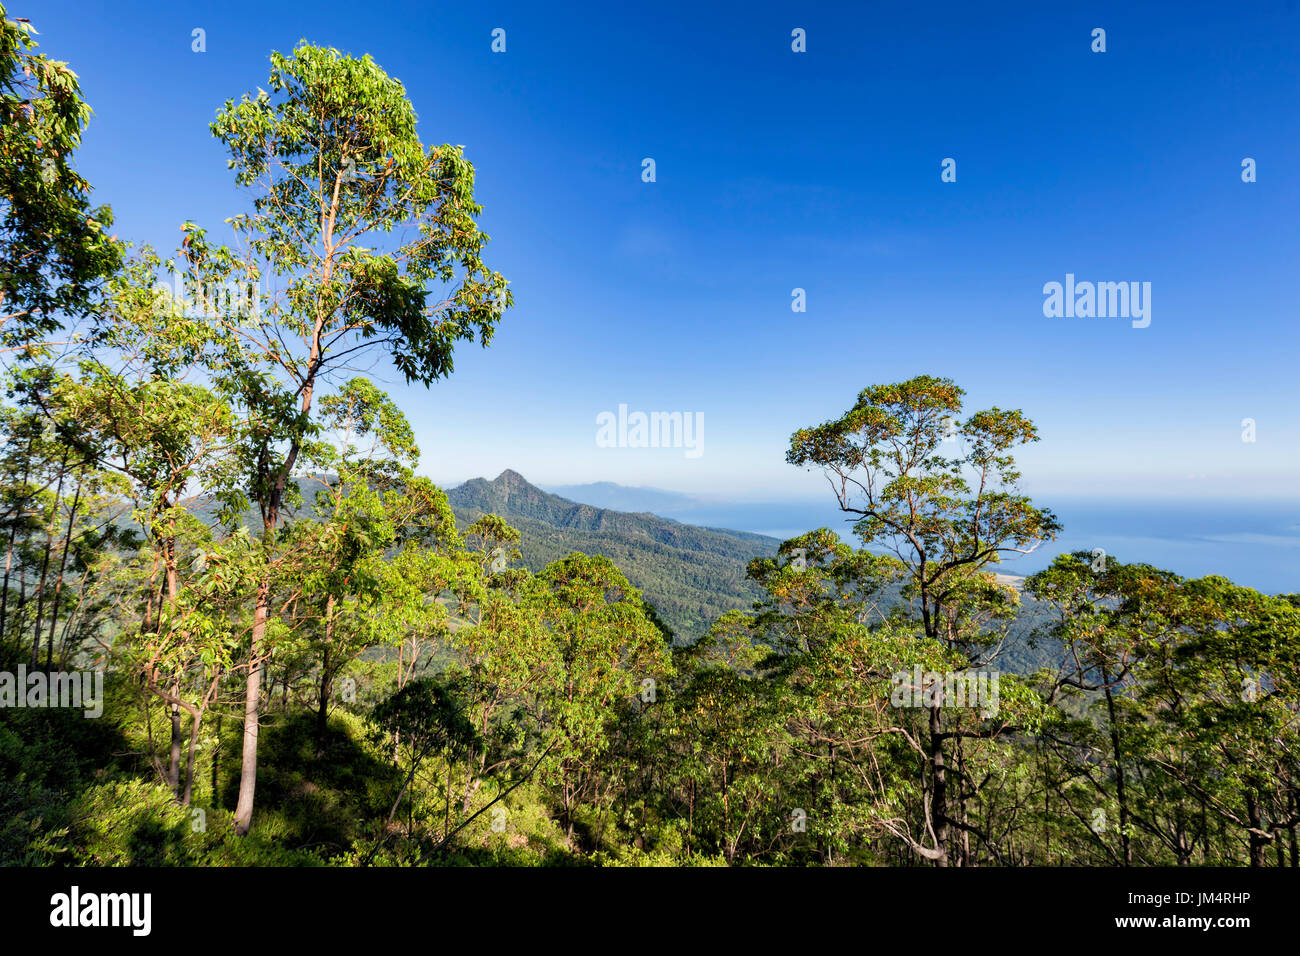 Morning view of towards the city of Maumere on the side of the stratovolcano, Mount Egon. - Stock Image